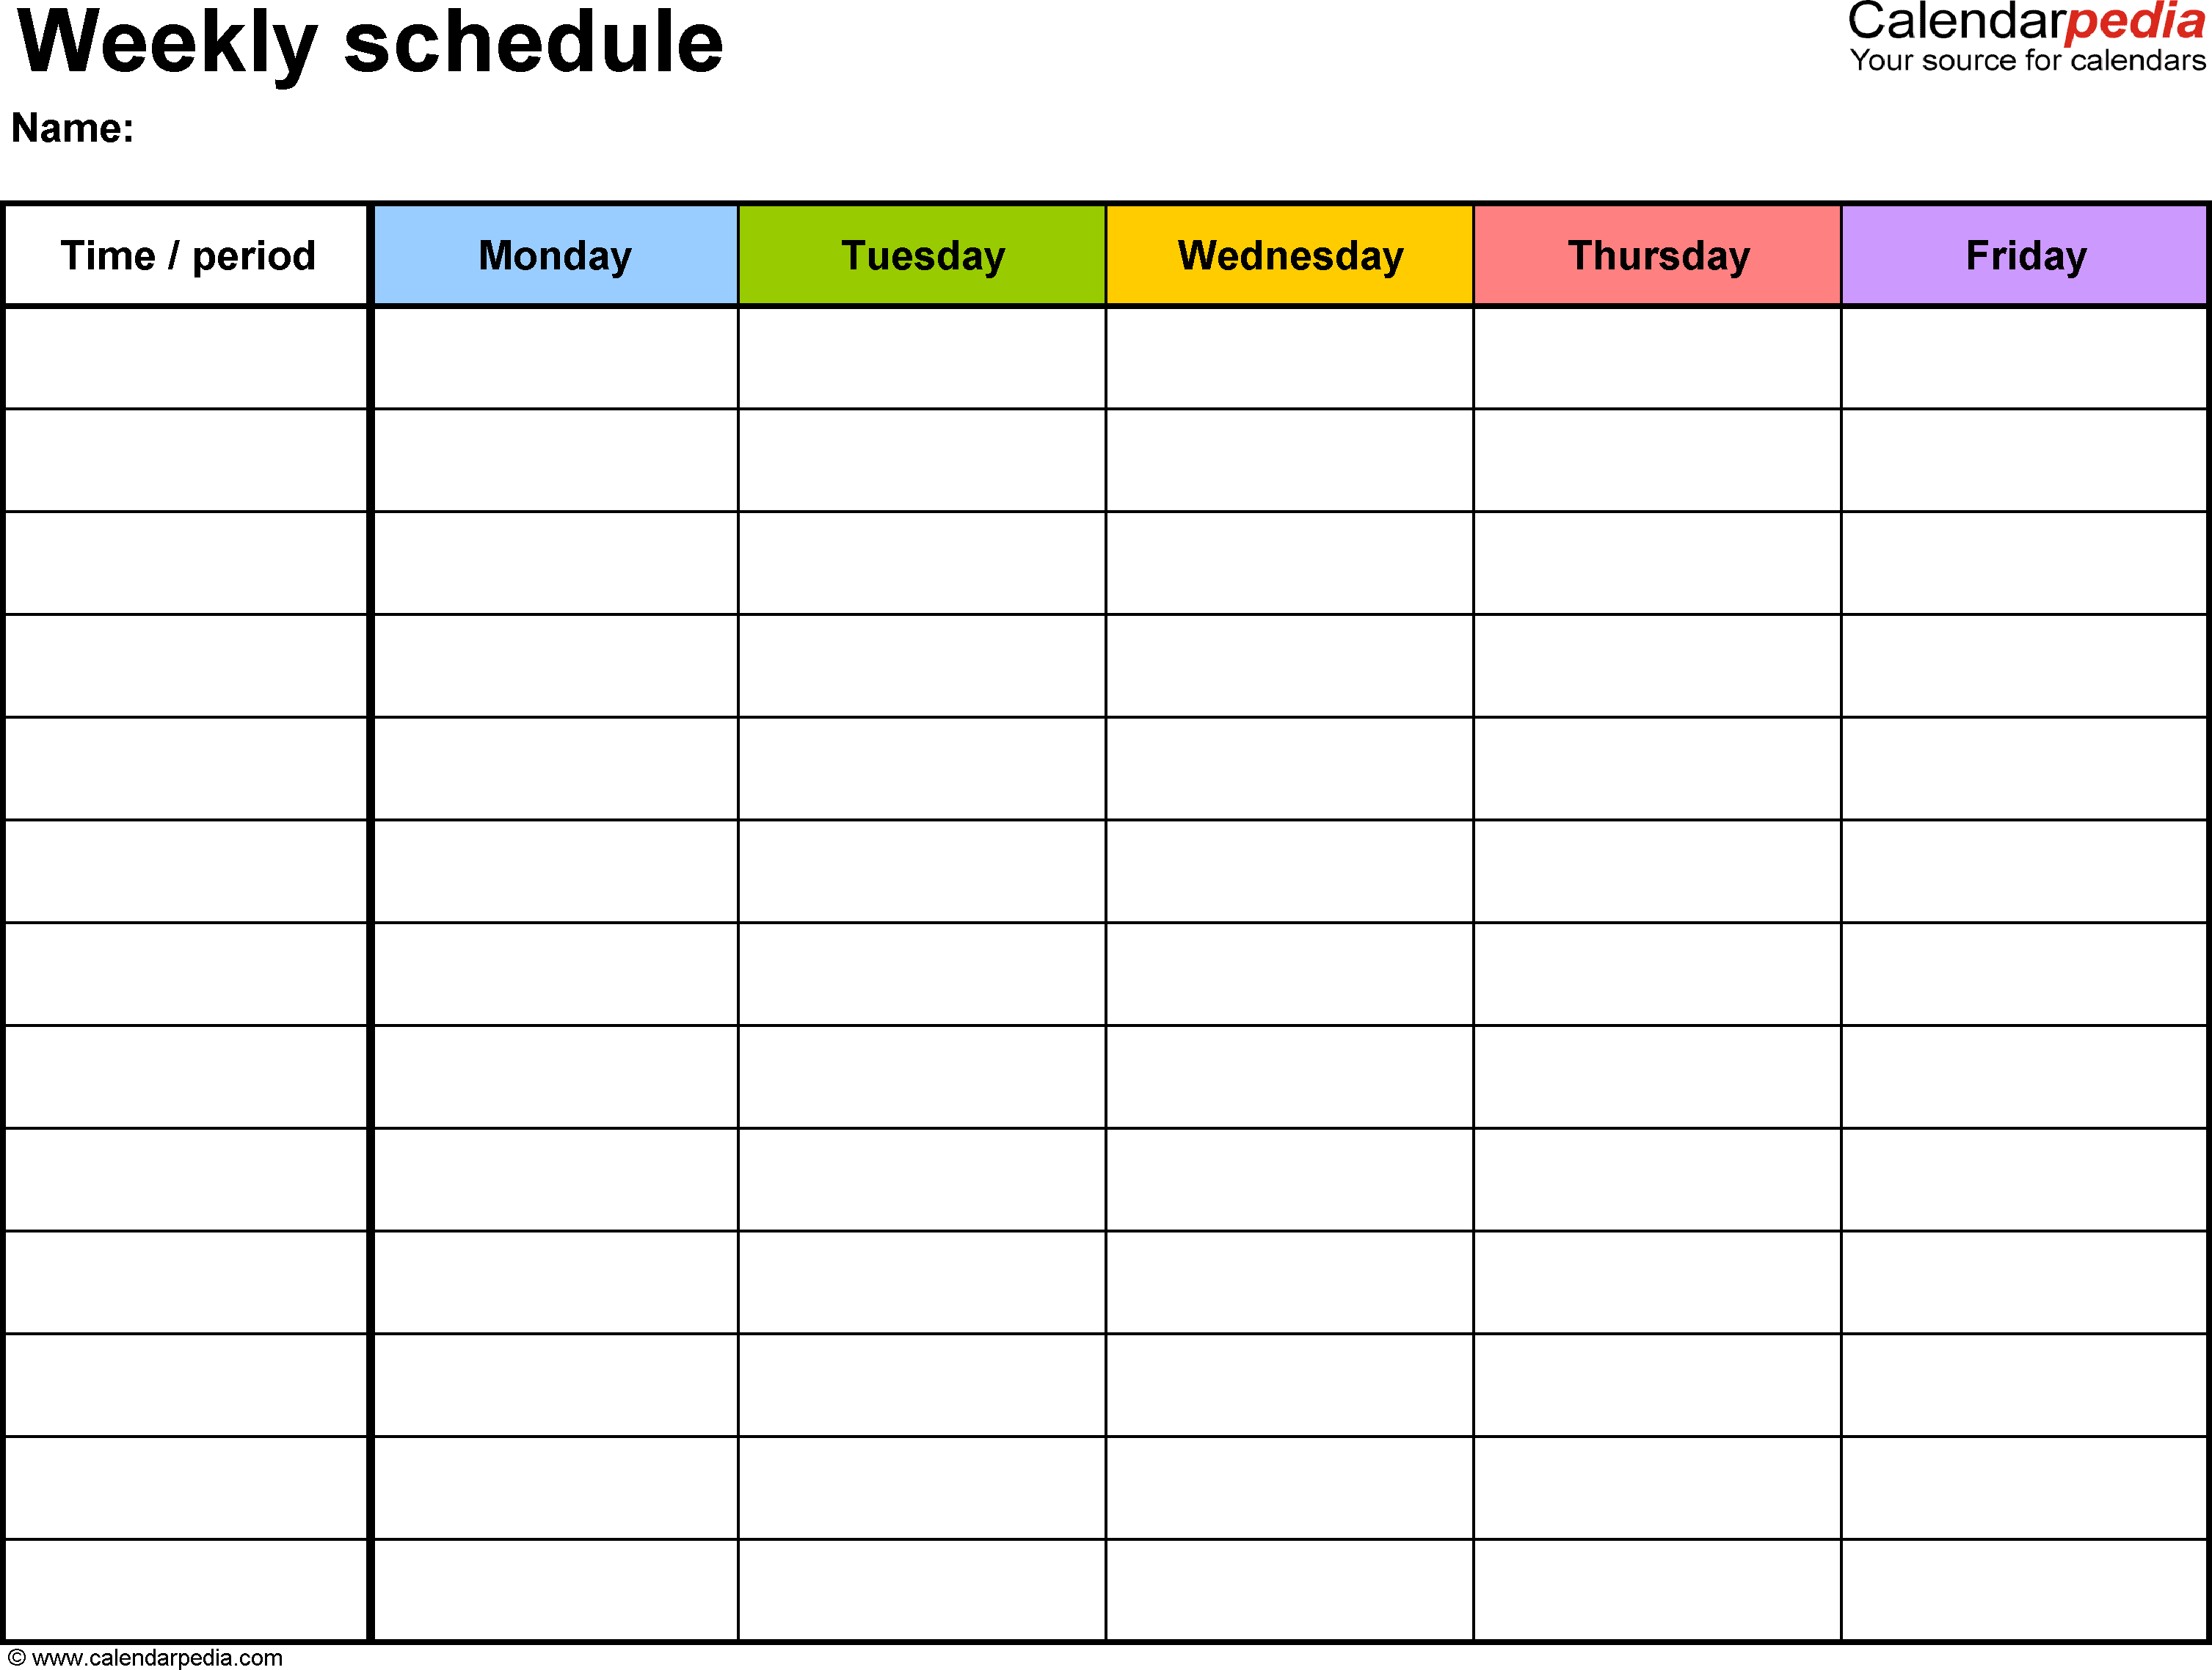 Weekly Downloadable Calendar  Bolan.horizonconsulting.co with Daily Calendar Template With Time Slots